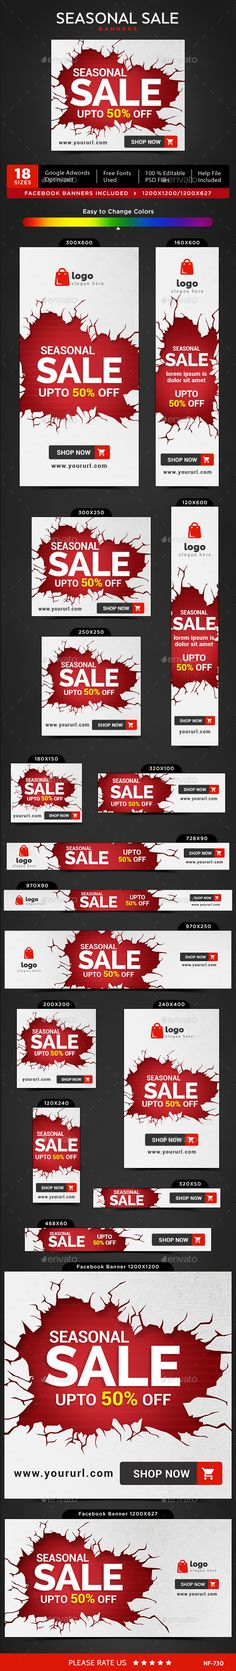 Seasonal Sale Web Banners Template PSD #design #ads Download: http://graphicriver.net/item/seasonal-sale-banners/13274689?ref=ksioks